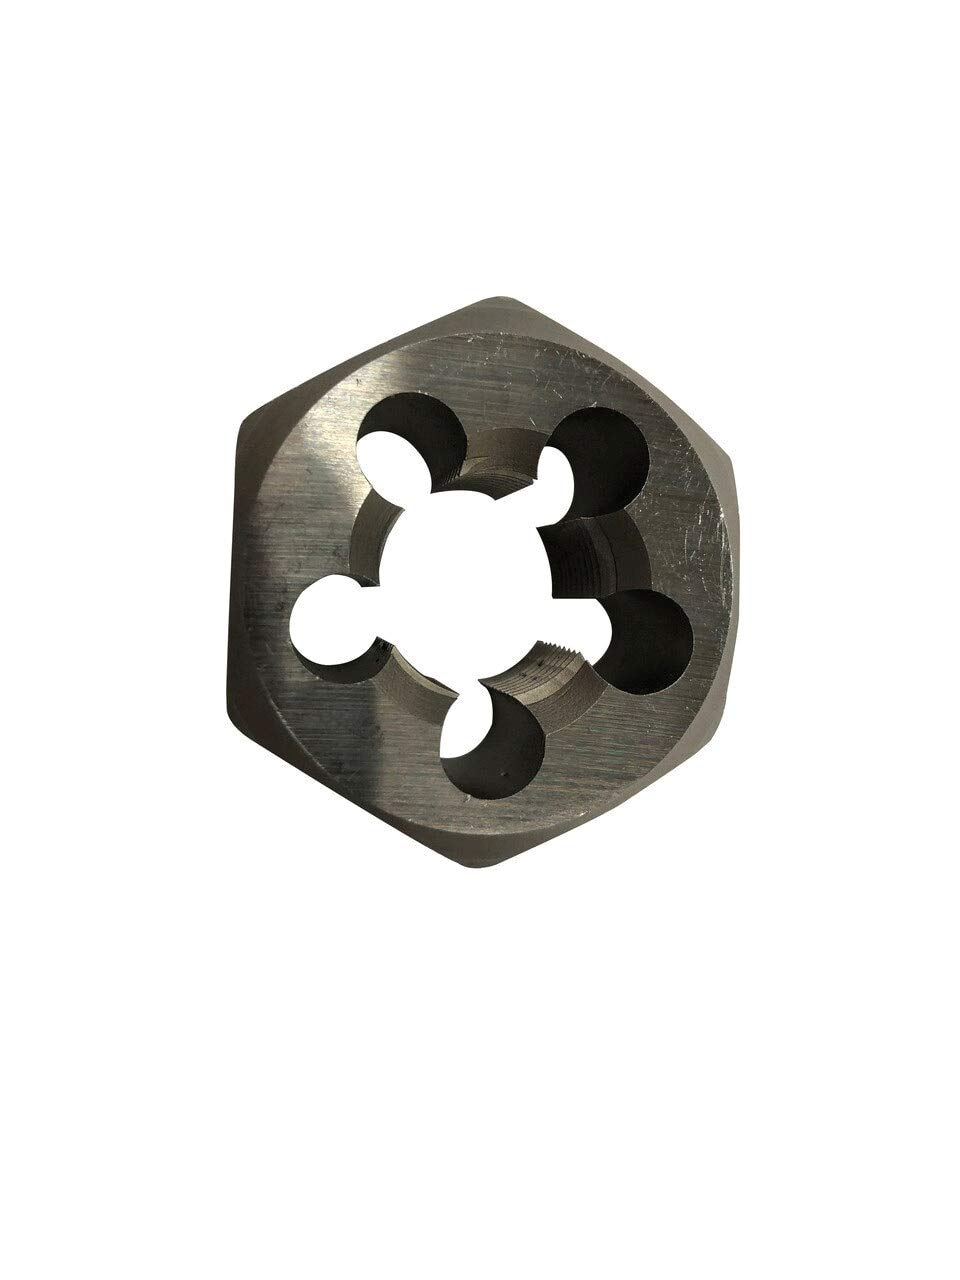 Hex Die Special Thread 15mm x .5mm Metric Carbon Steel